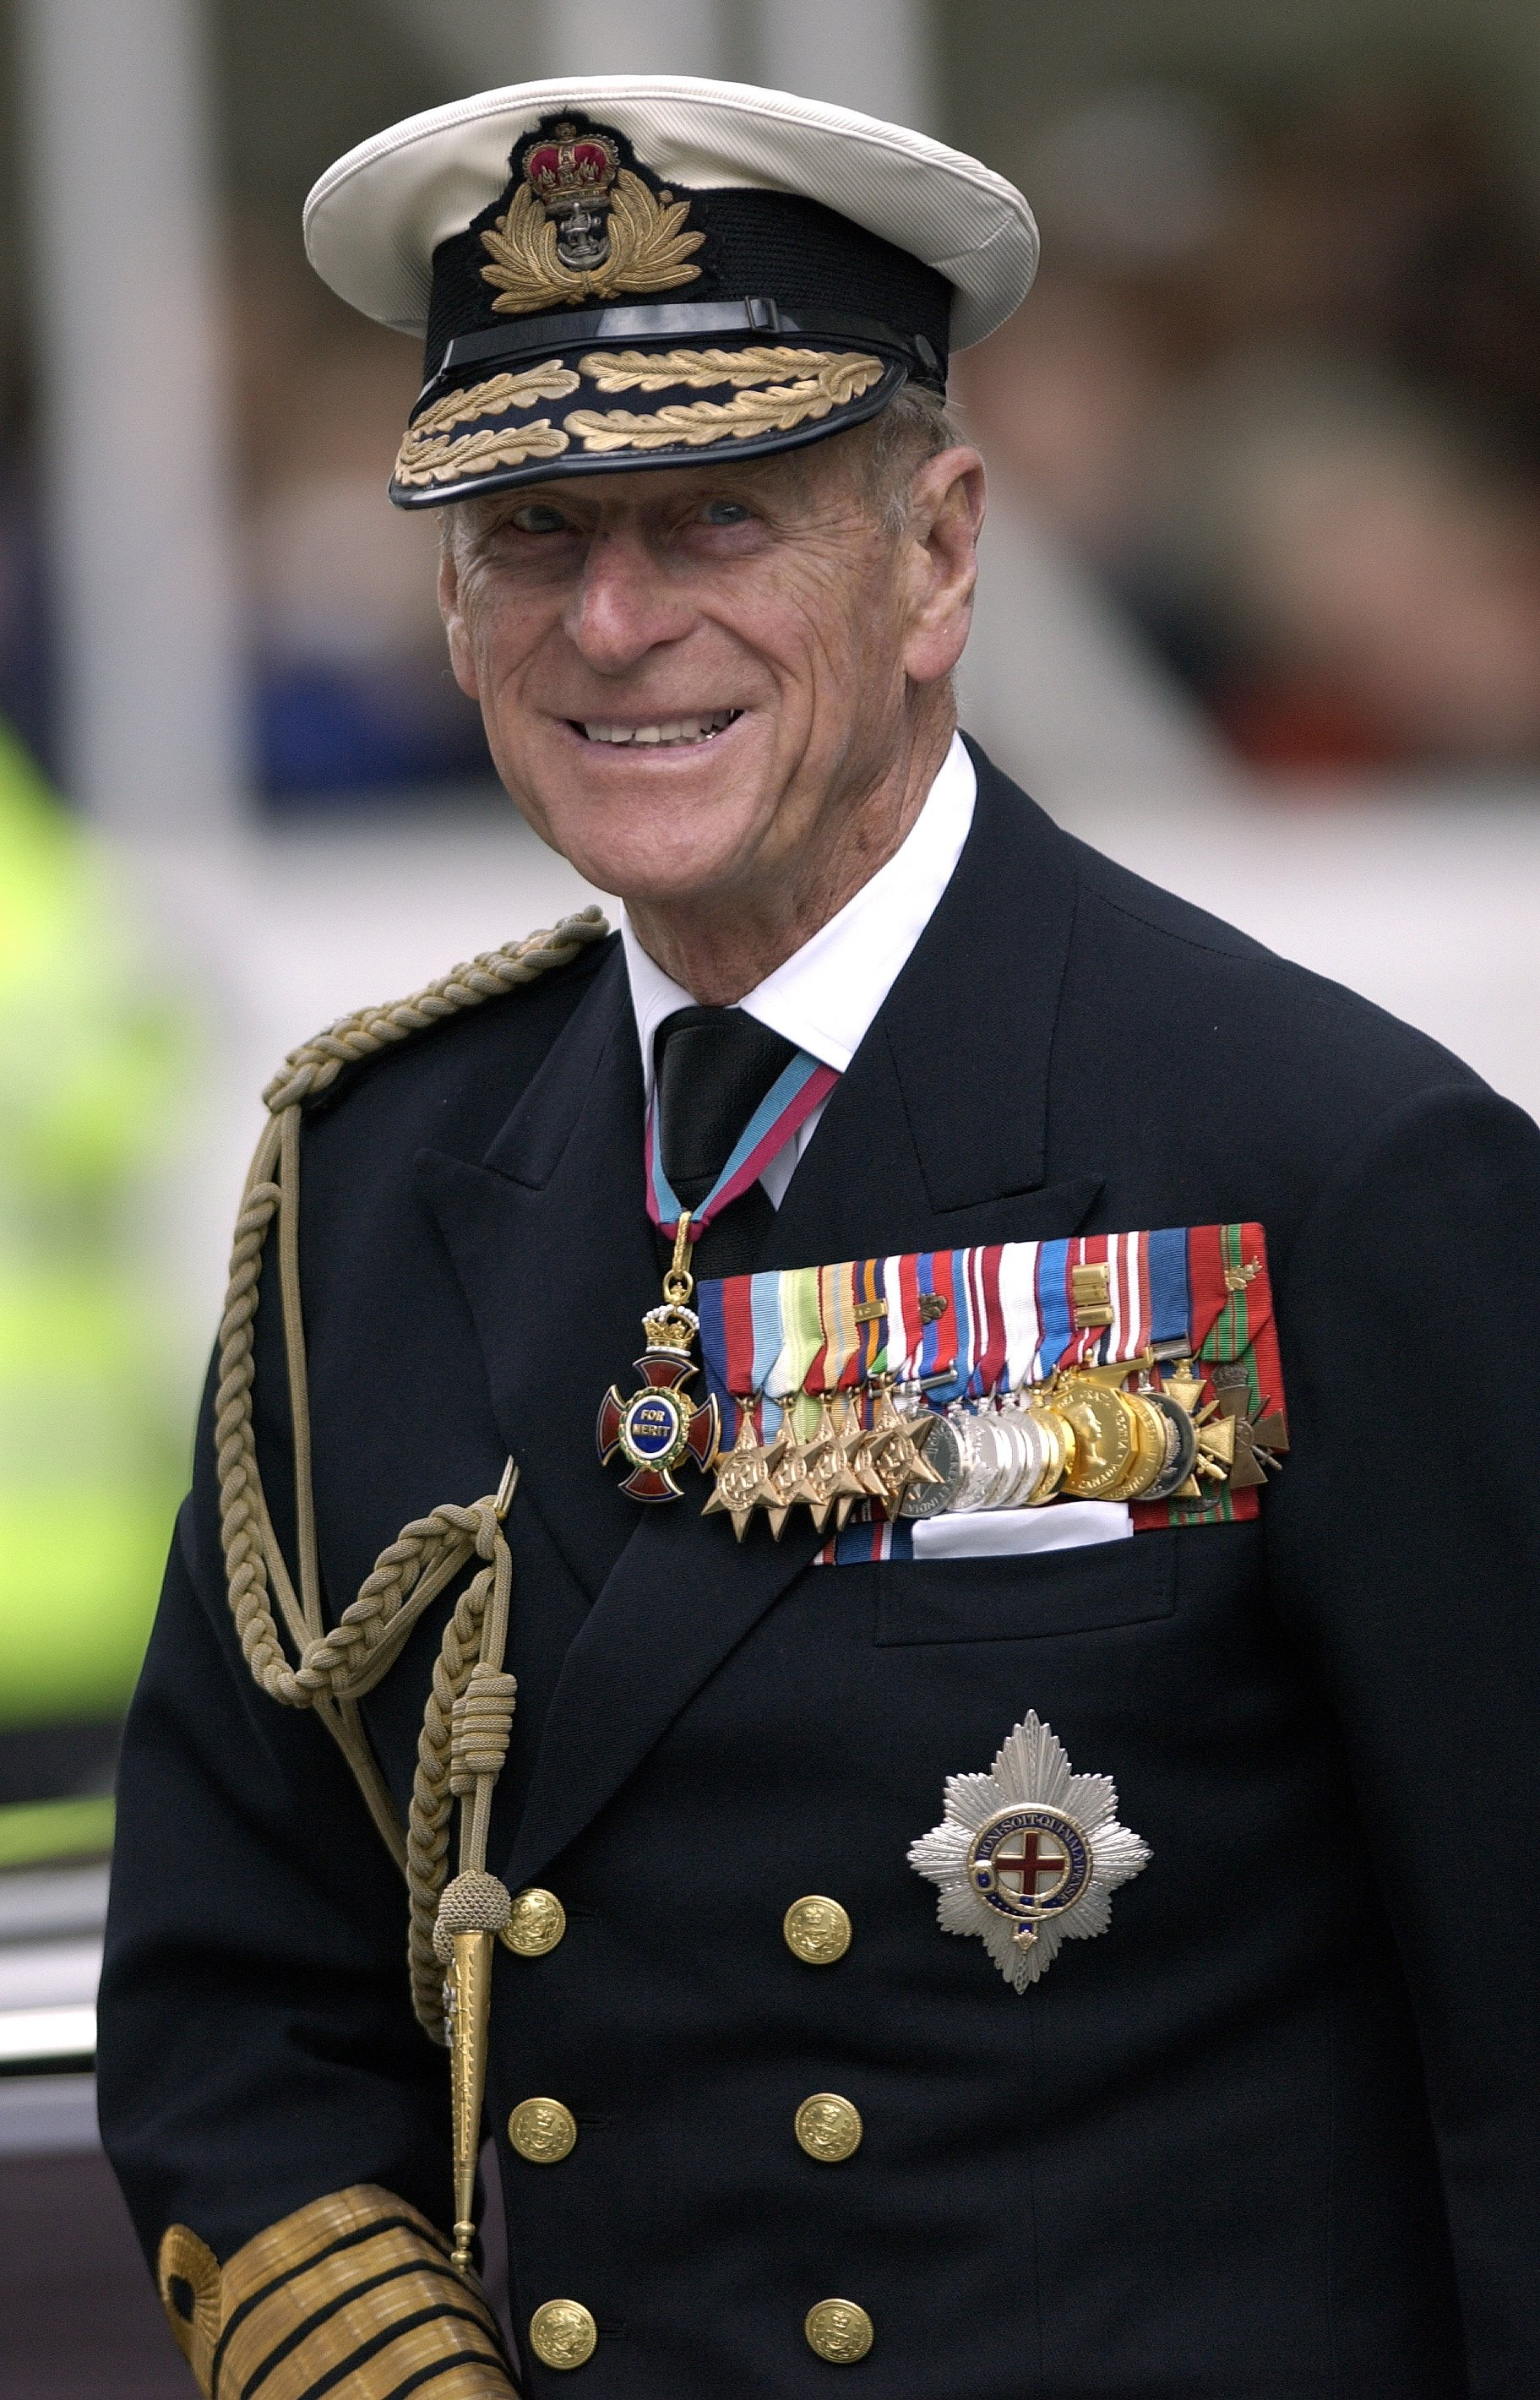 Prince Philip pictured in his Military Uniform As Admiral Of The Fleet for a service remembering the Iraq War. London, England. | Photo: Getty Images